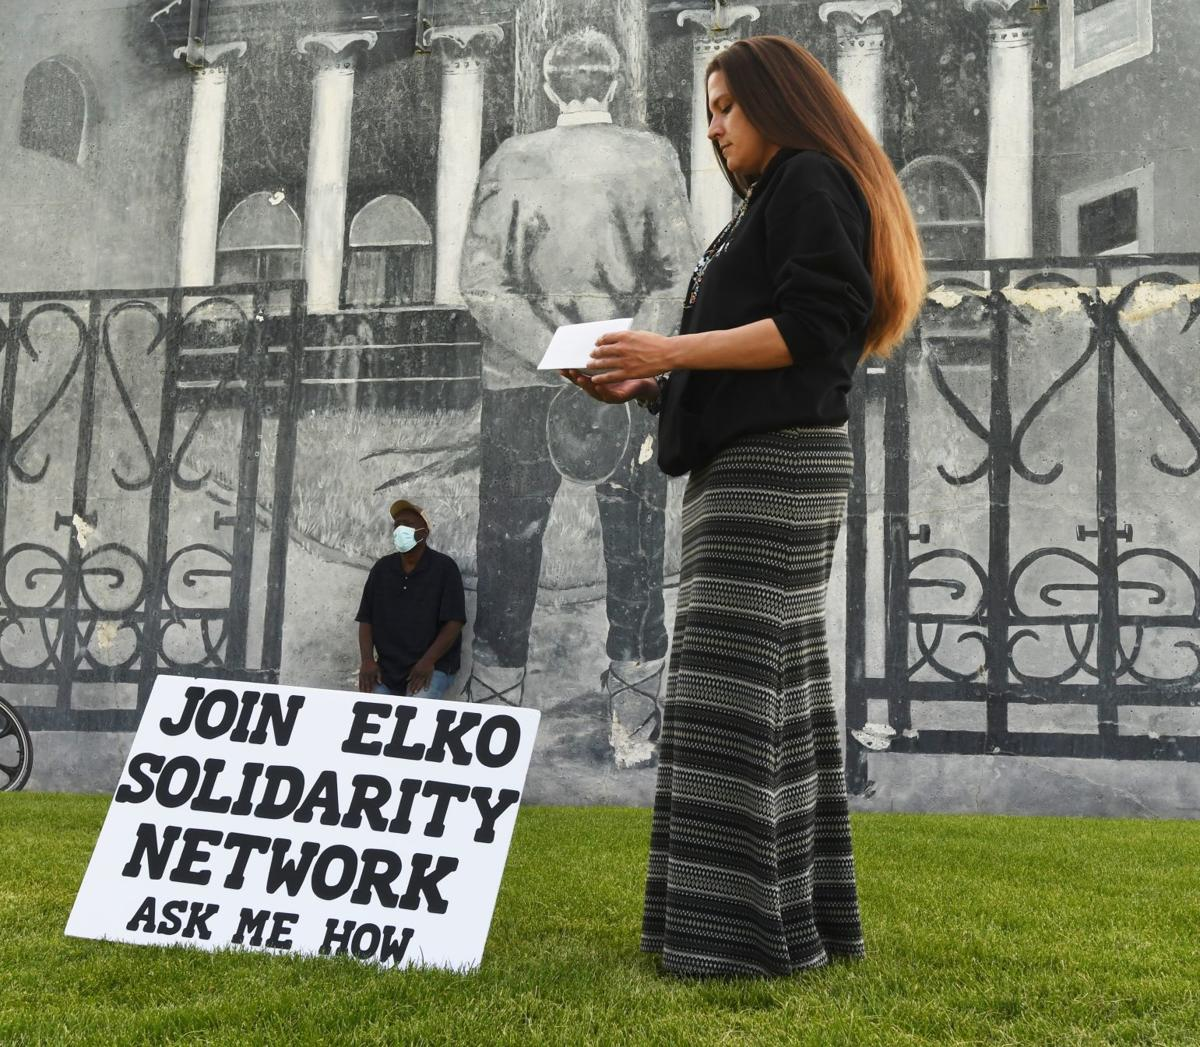 Second Elko solidarity march